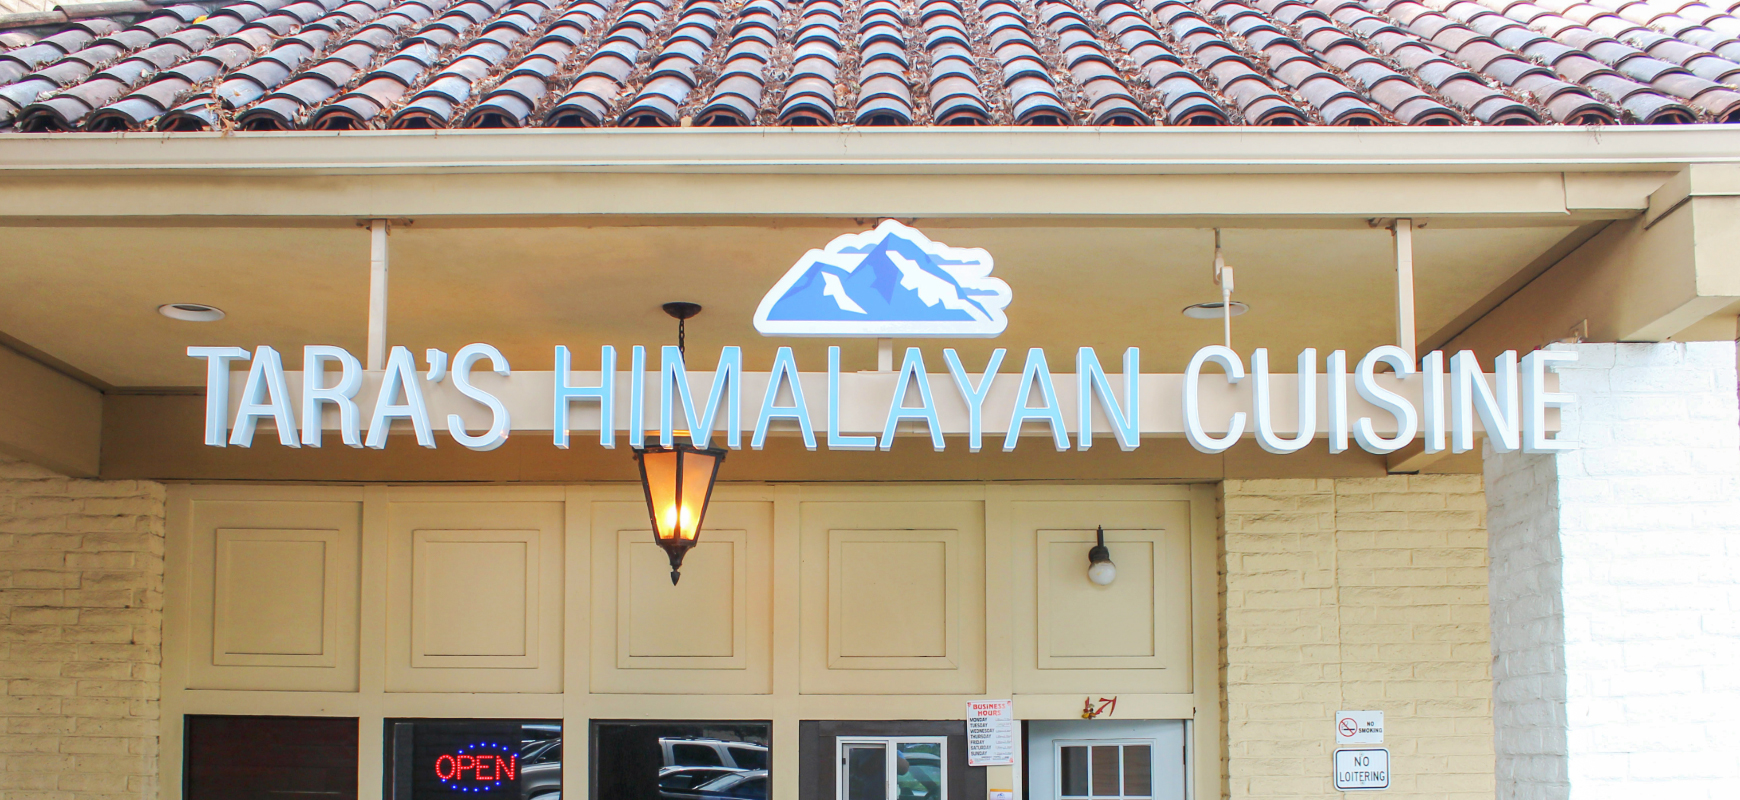 Tara's Himalayan Cuisine custom channel letter sign made of acrylic and aluminum for restaurant outdoor design and branding